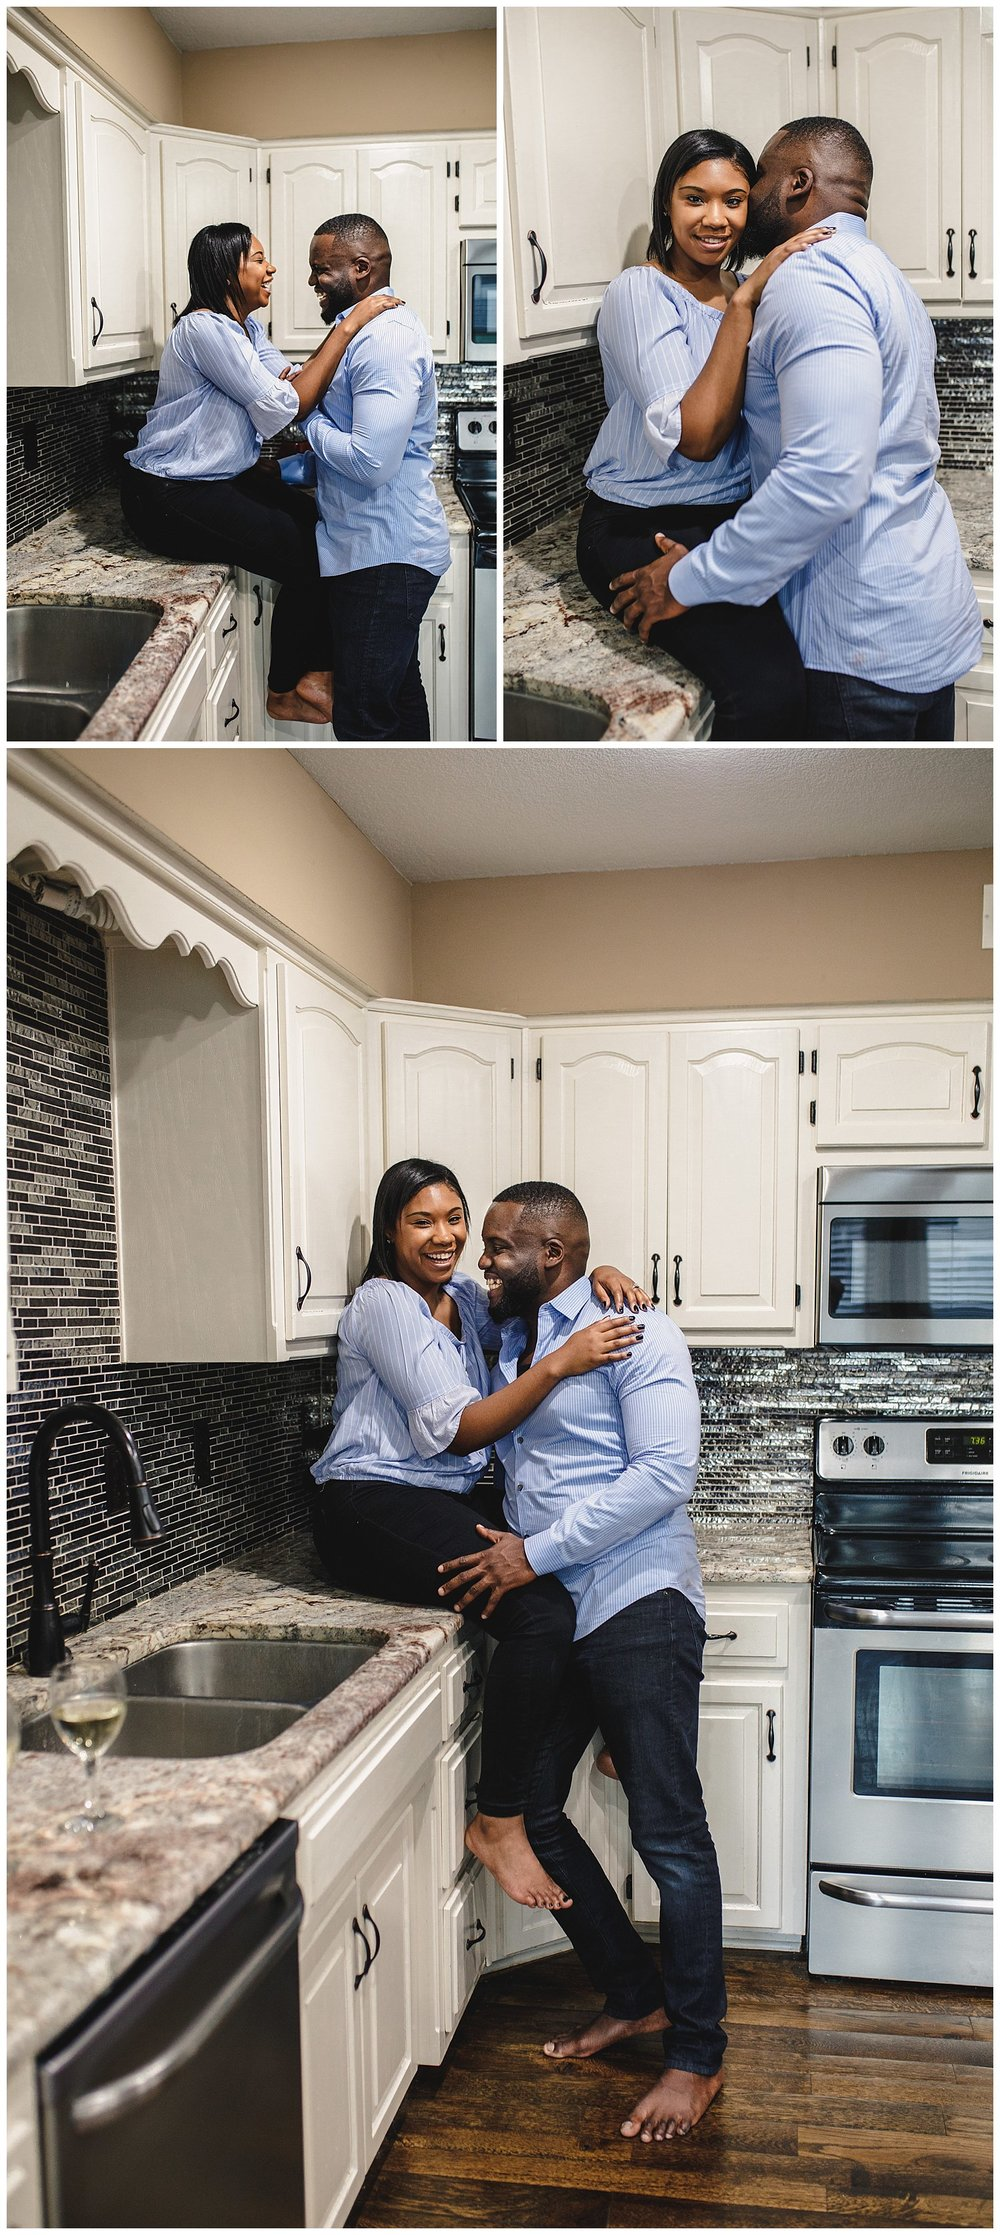 Kansas_City_Engagment_In_Home_Session_Kelsey_Diane_Photography_Wedding_Photographer_Engagment_Photographer_0110_Bri_Prime.jpg